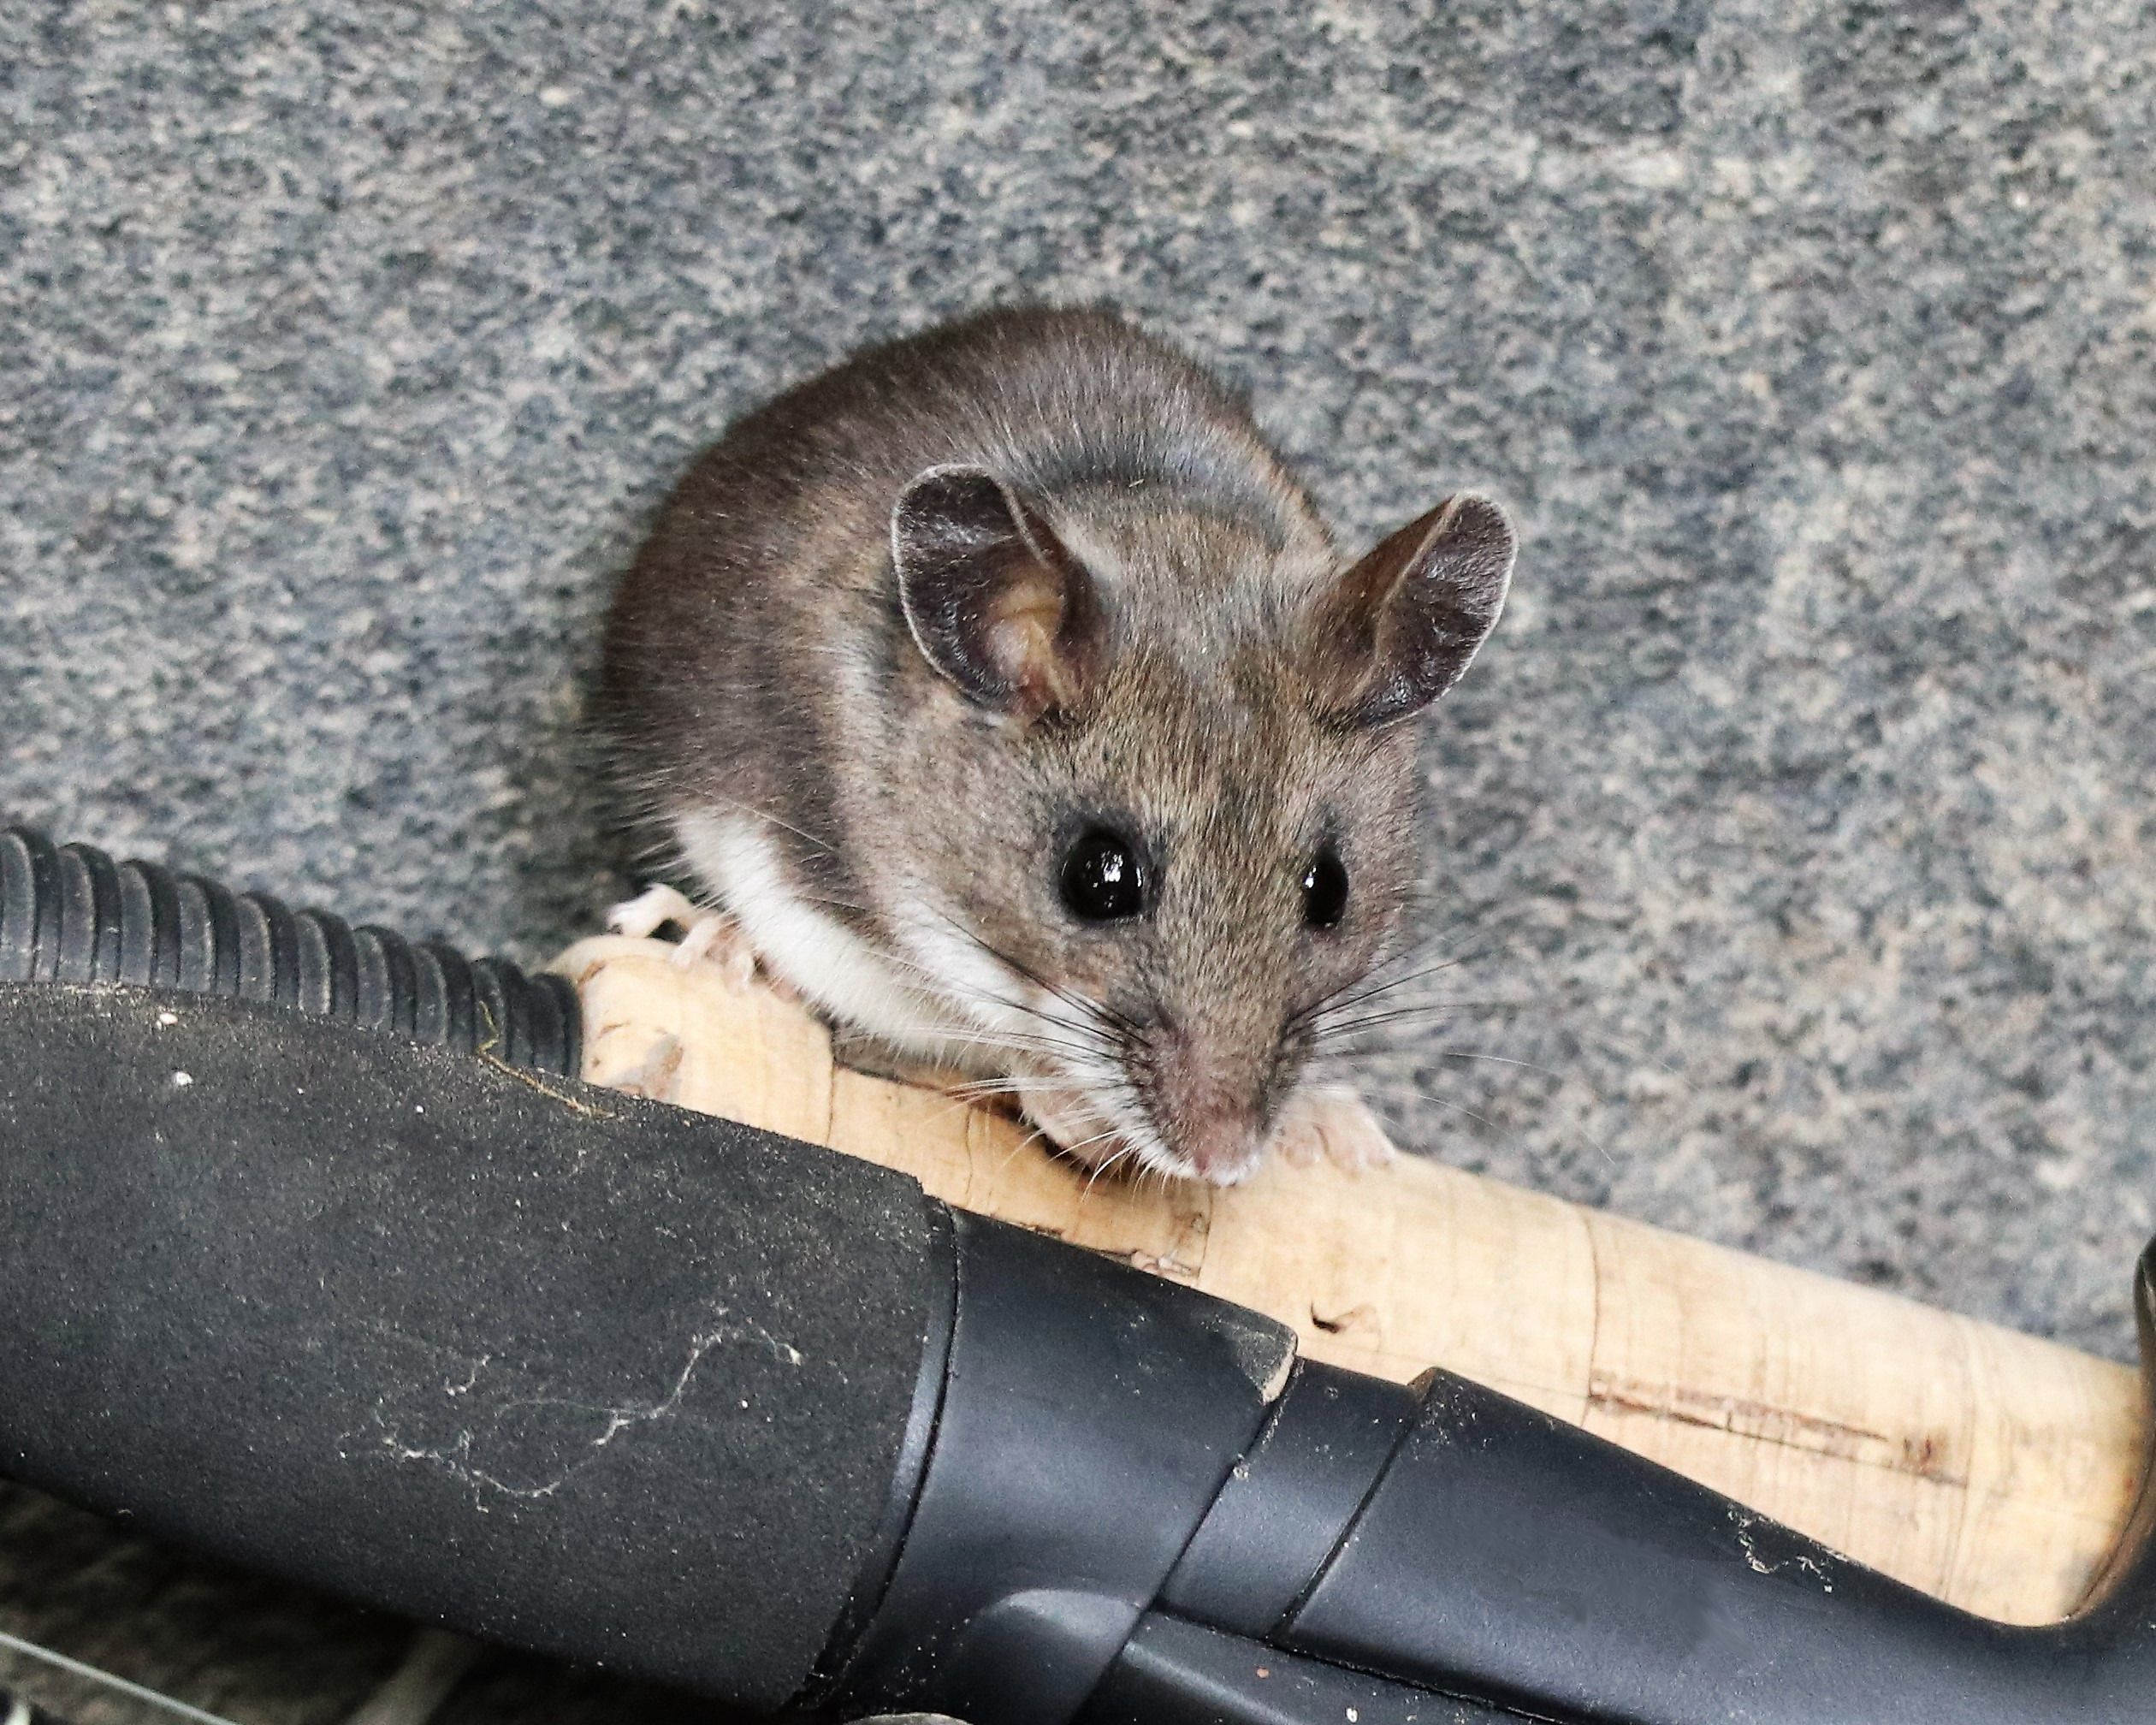 North American Deer Mouse The Deer Mouse Peromyscus Maniculatus Is A Small Native Rodent In The Family Muridae With Boreal Forest Habitats North American